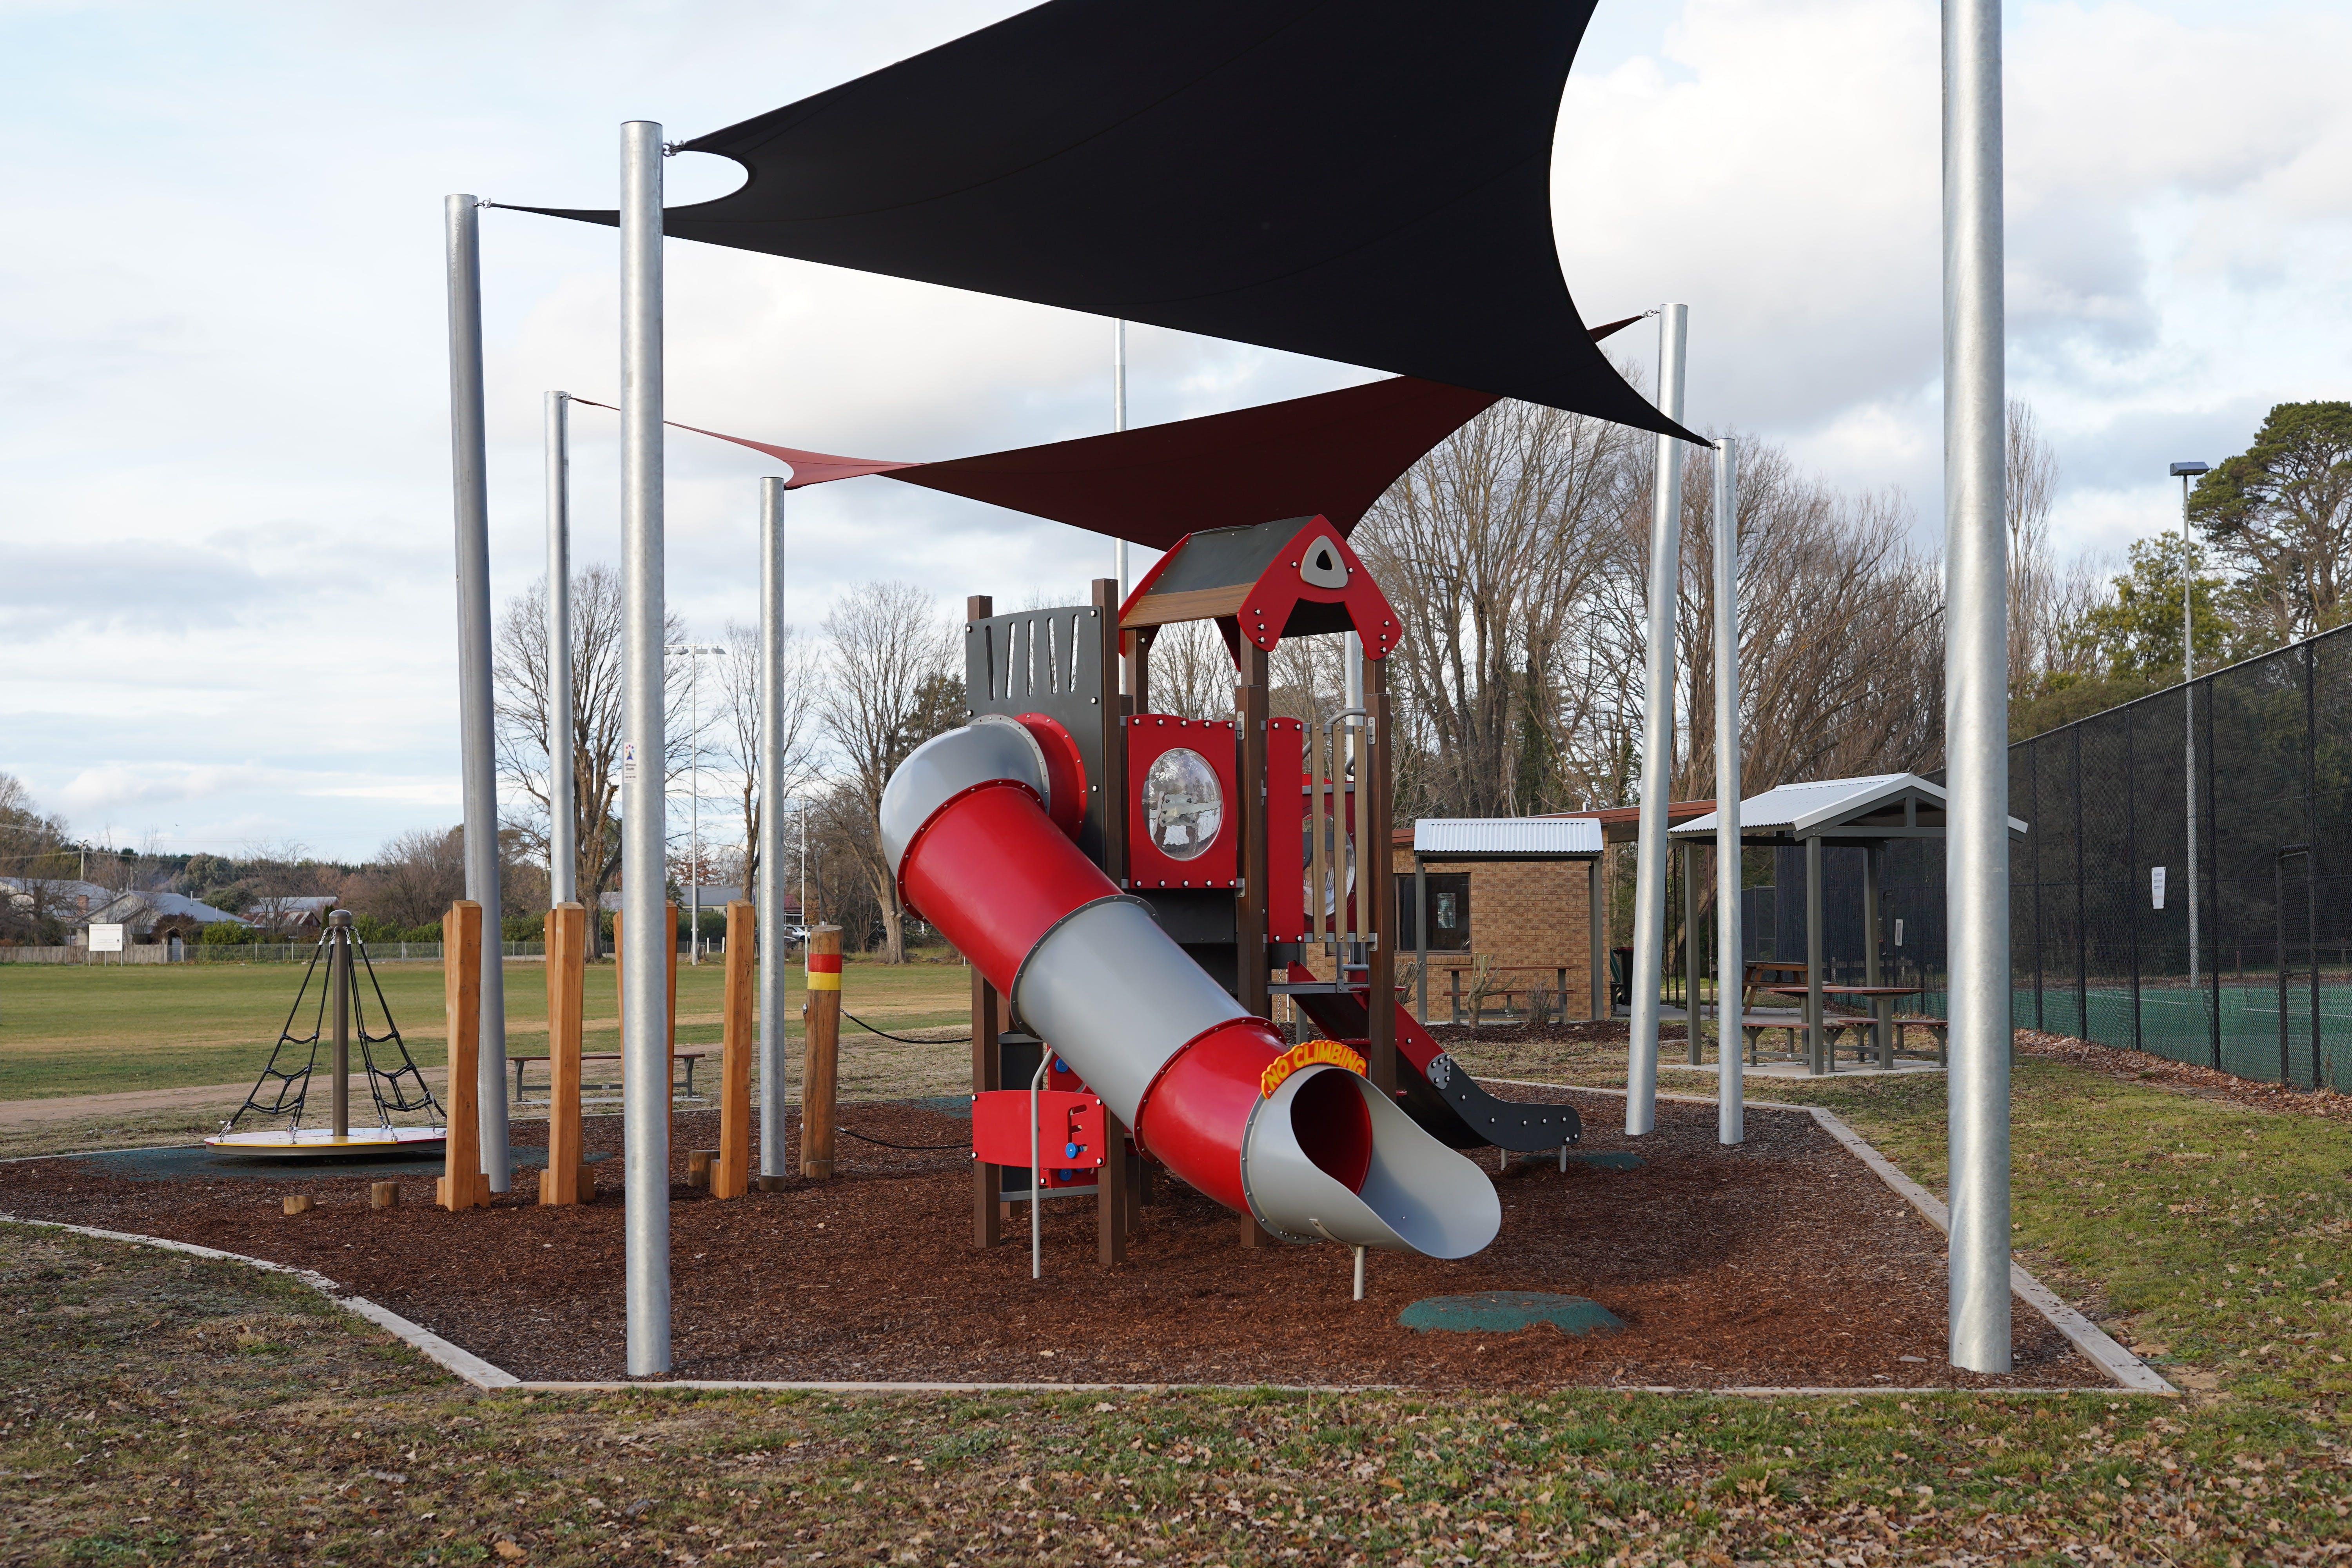 Braidwood Recreation Grounds and Playground - Victoria Tourism